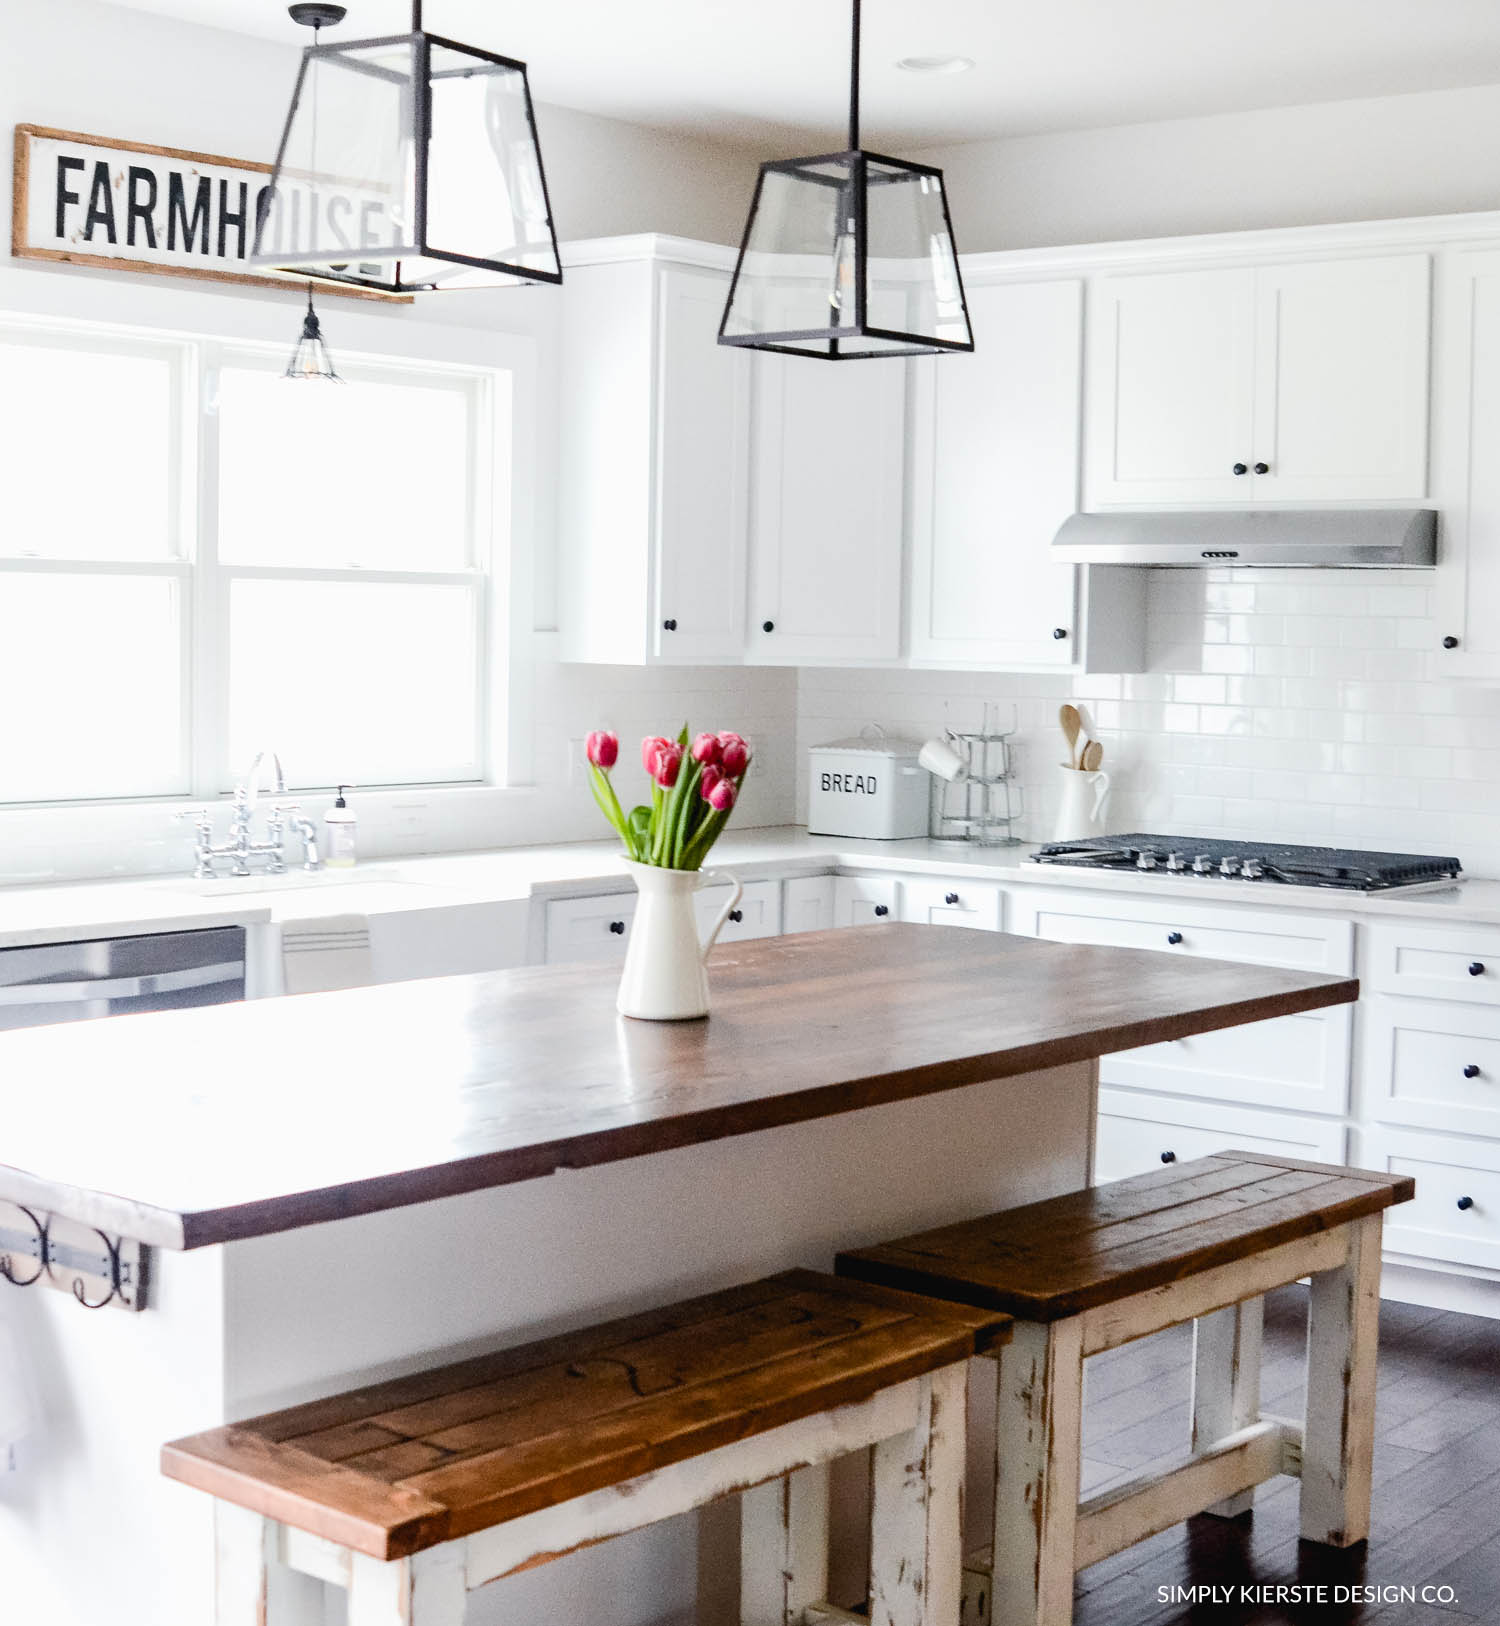 Winter at Old Salt Farm | Winter Home Tour | oldsaltfarm.com #farmhouse #whitefarmhouse #farmhousestyle #hometour